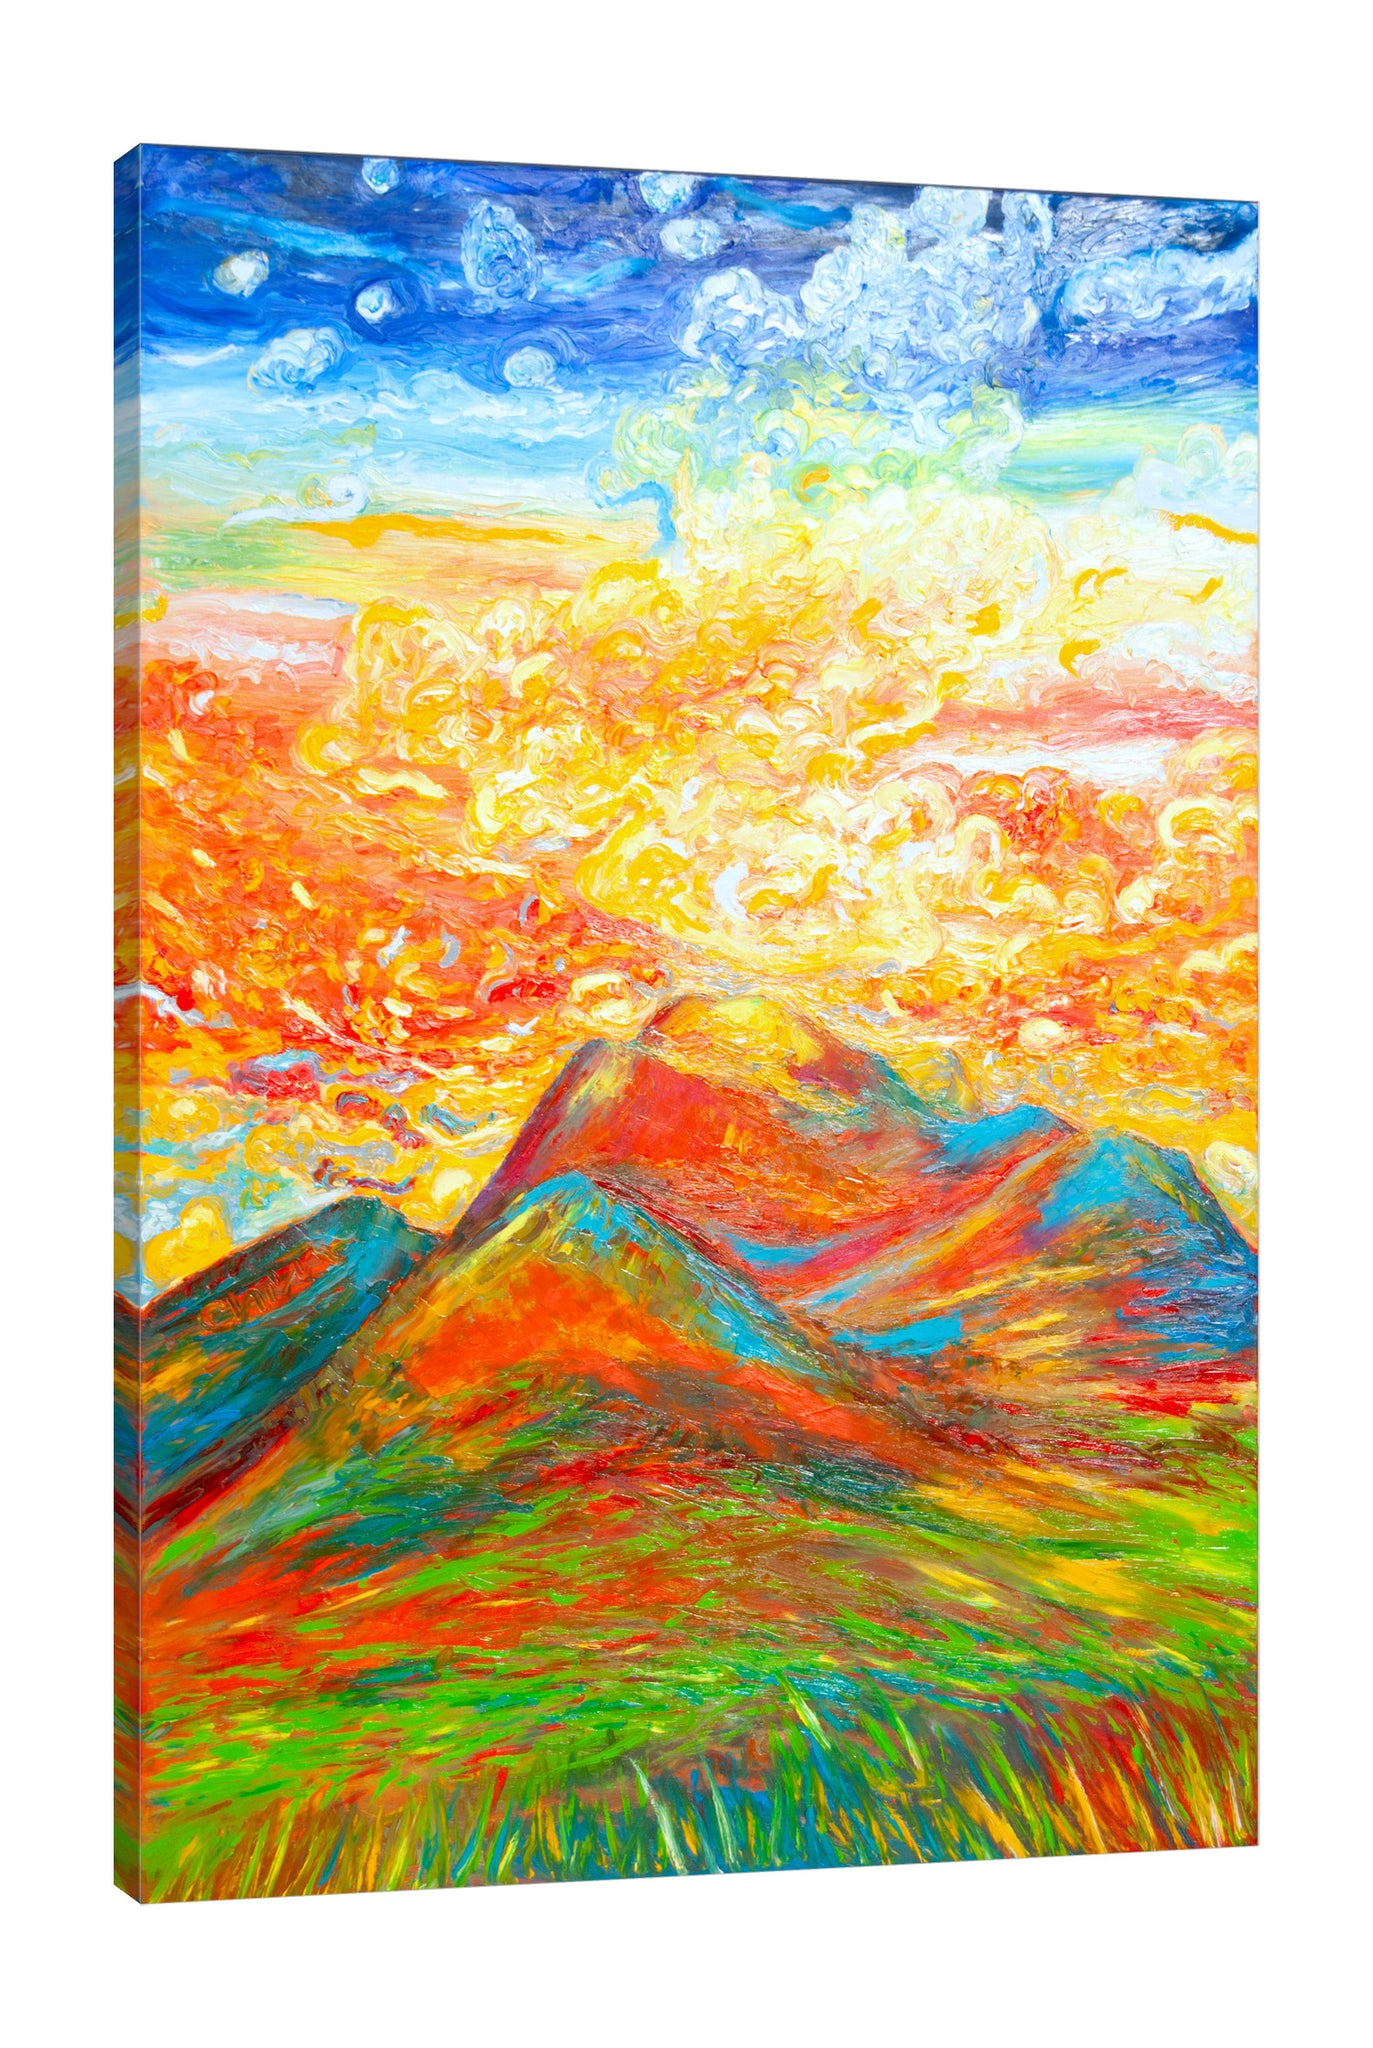 Chiara-Magni,Modern & Contemporary,Landscape & Nature,Finger-paint,clouds,scenery,mountains,skies,blue,yellow,orange,red,green,grass,portrait,